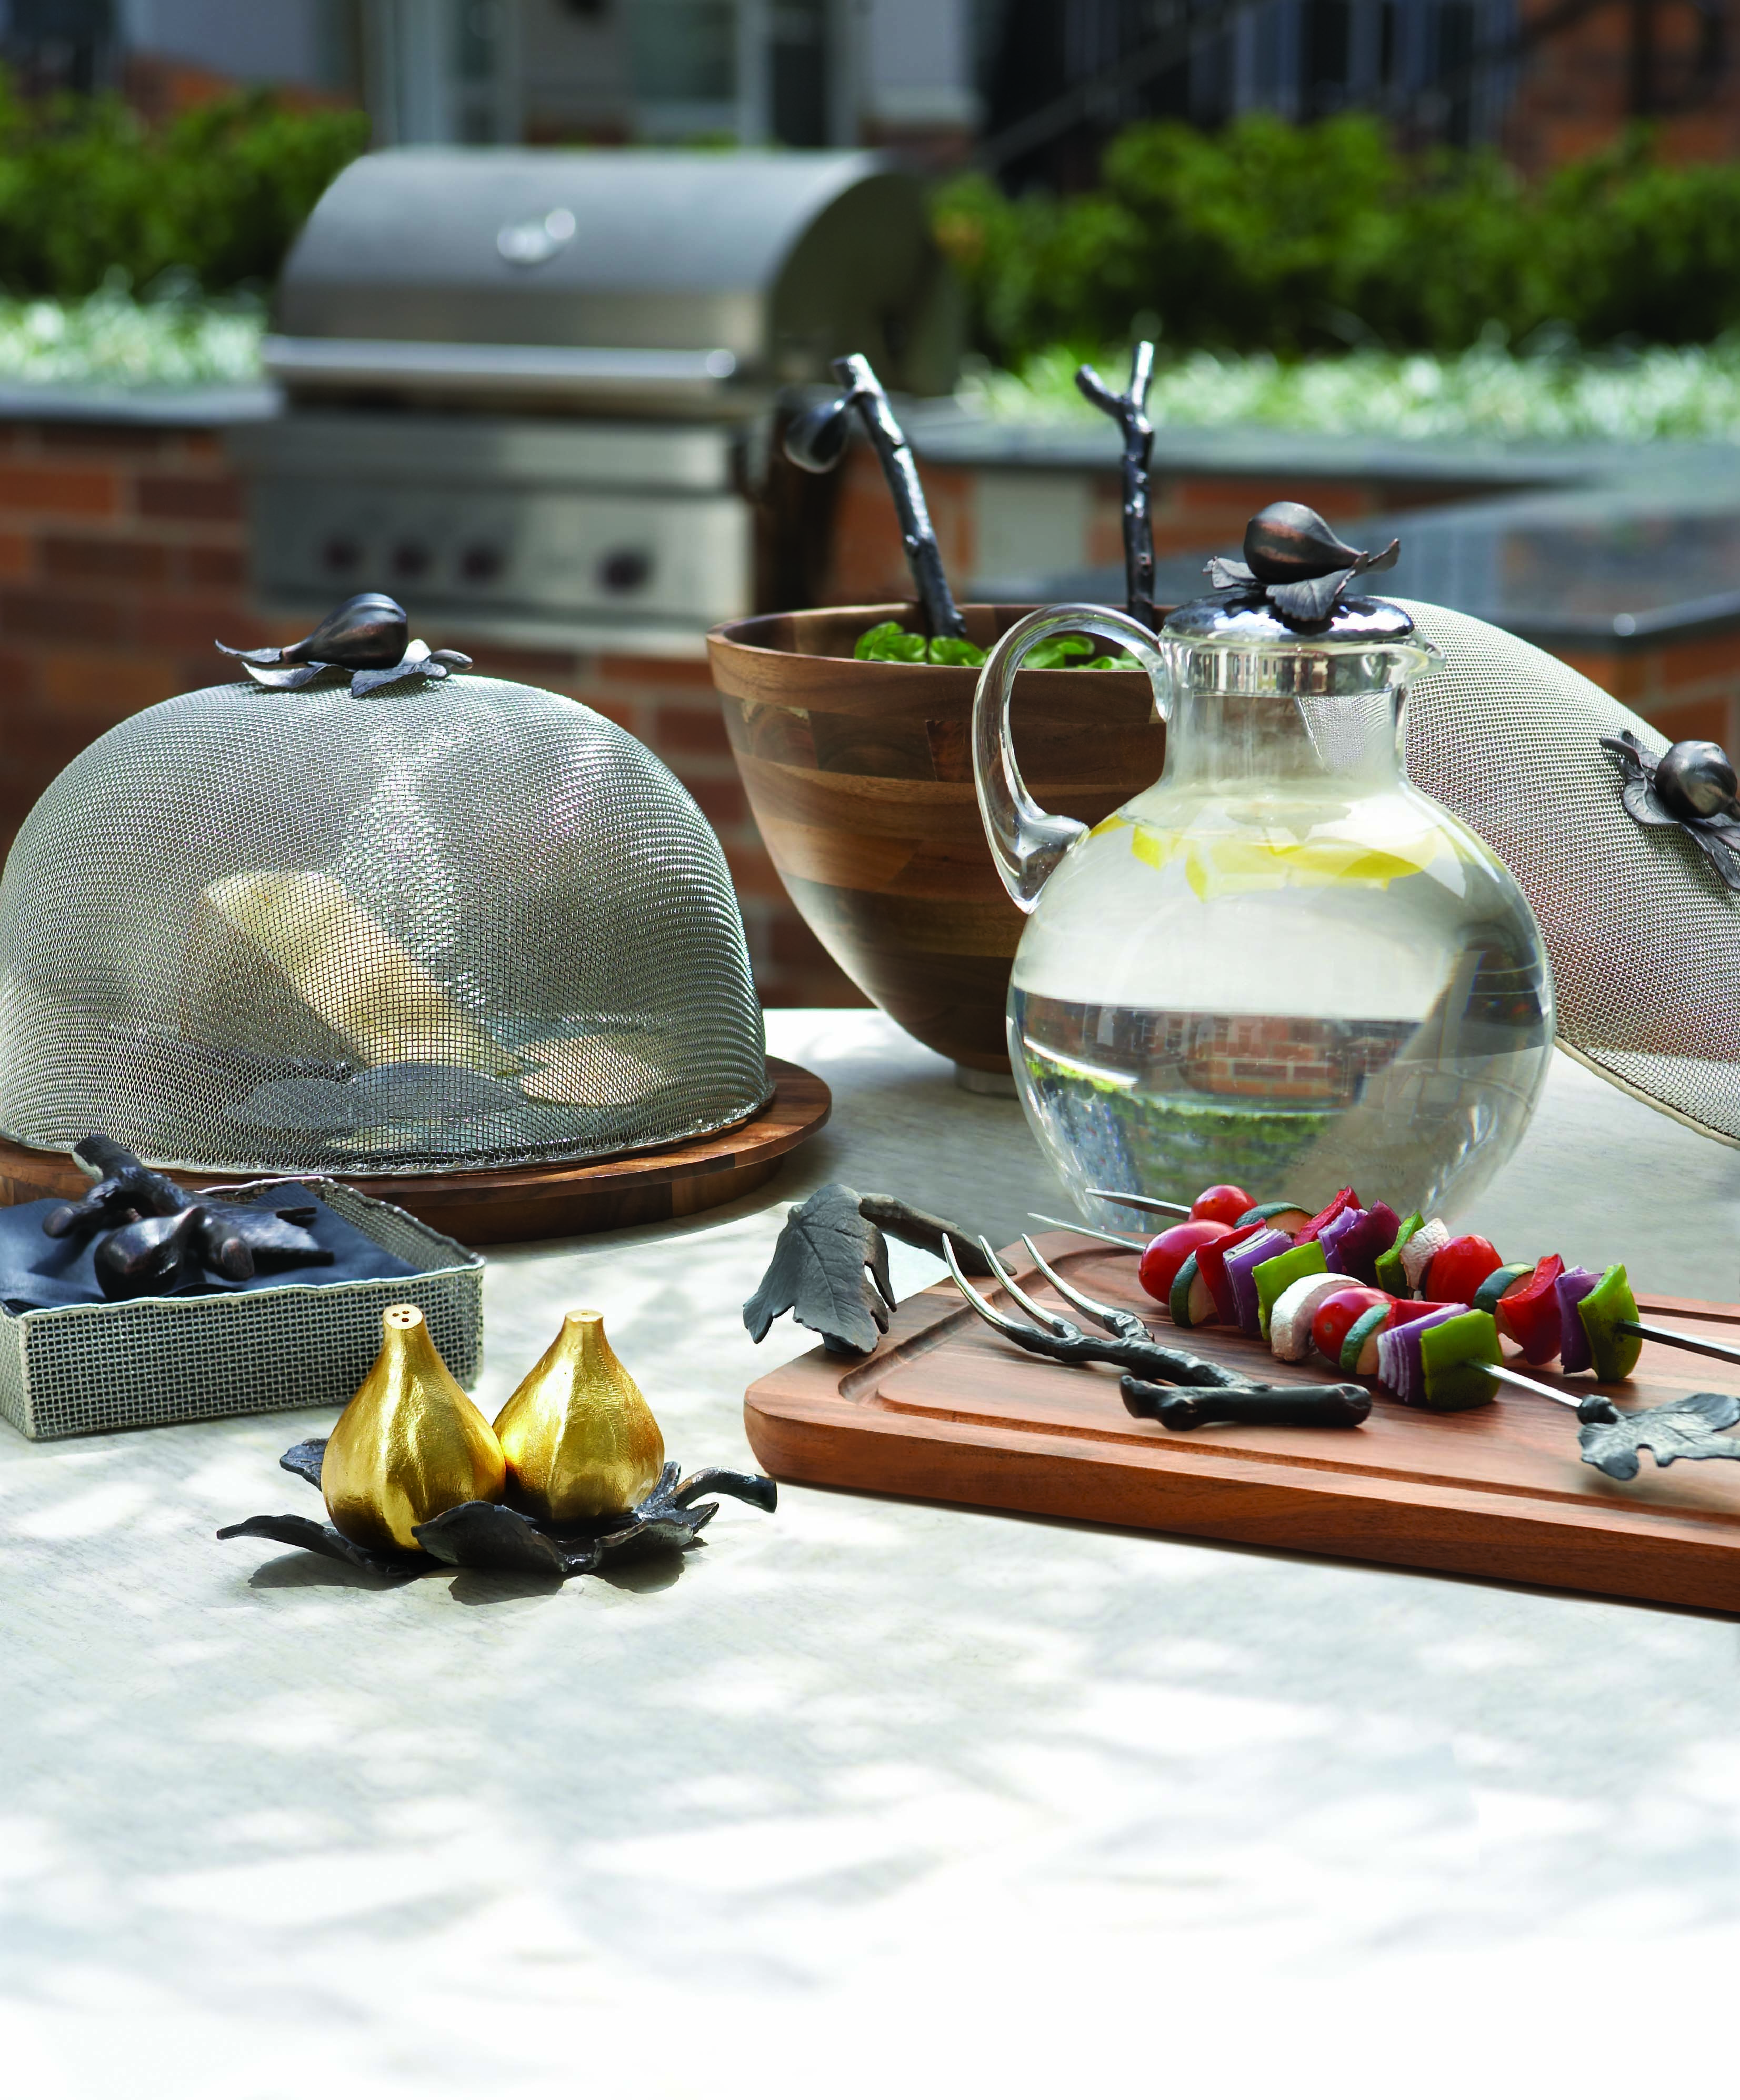 Outdoor Kitchens Perfect For Summer Entertaining: Michael Aram Fig Leaf Collection For Outdoor / Summer